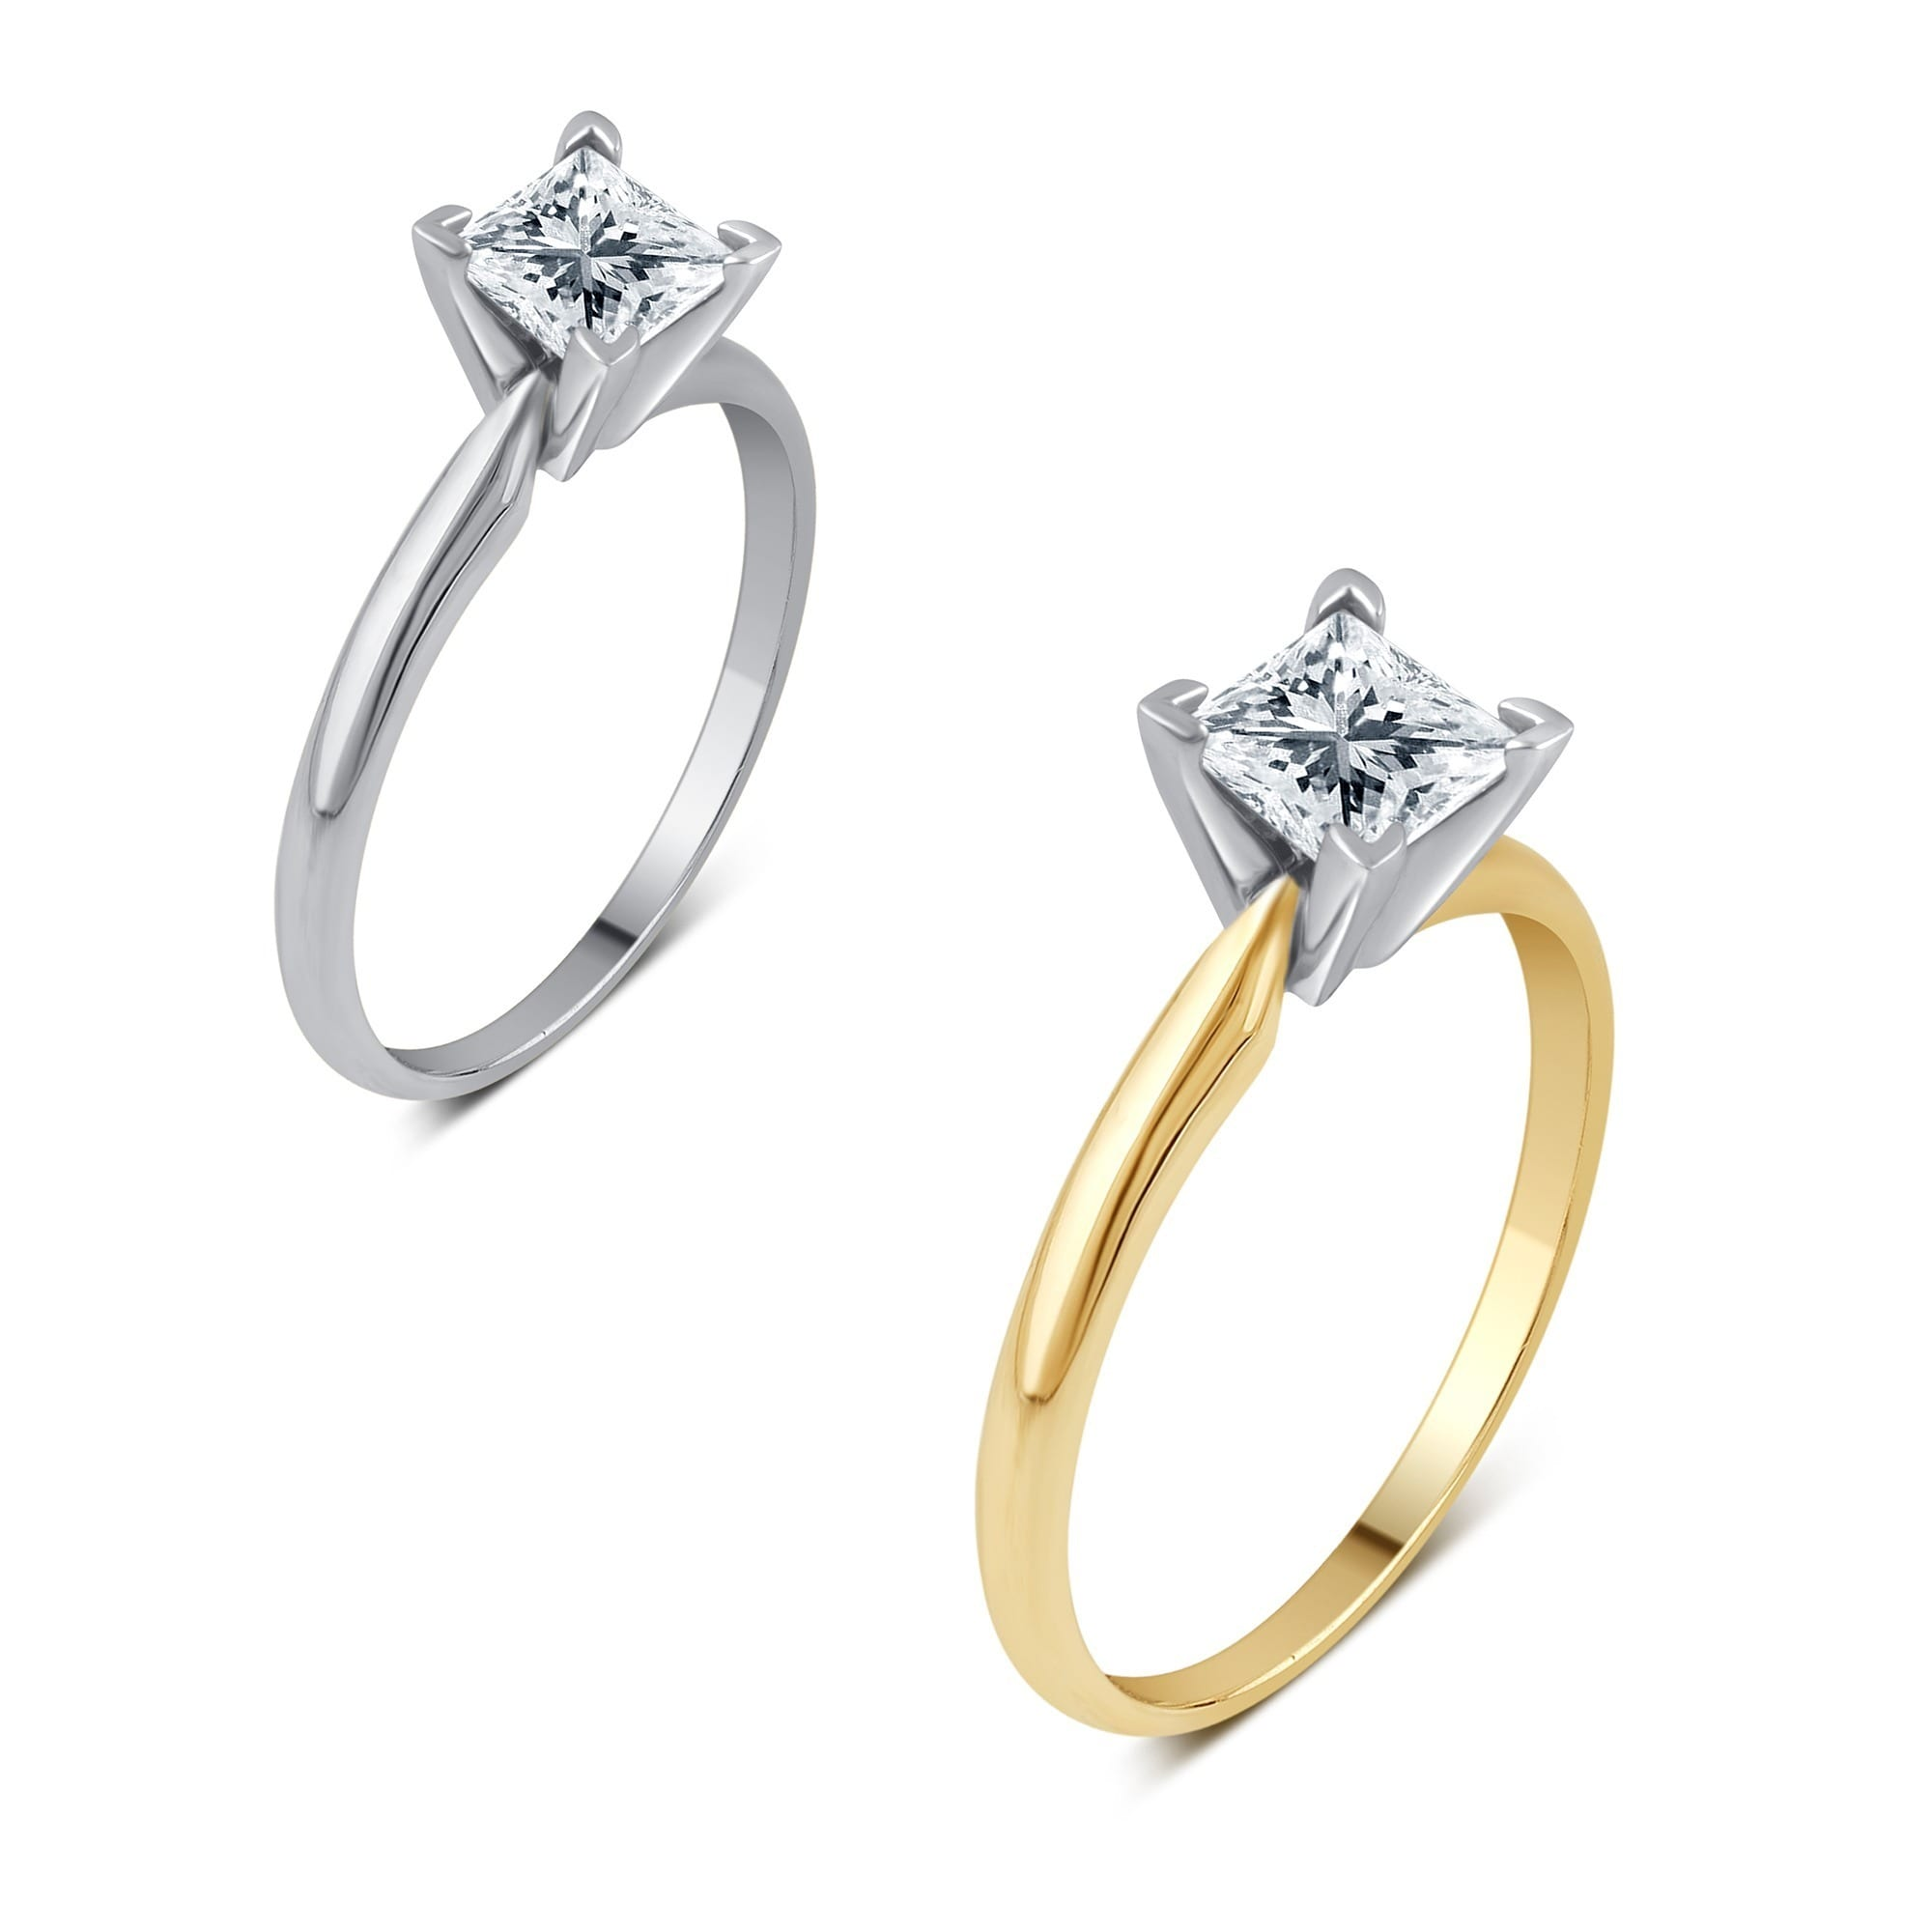 Jewelry & Watches 18k Yellow Gold Solitaire Accented Diamond Ring Anniversary Vvs2 D 1.35 Carat Hot Sale 50-70% OFF